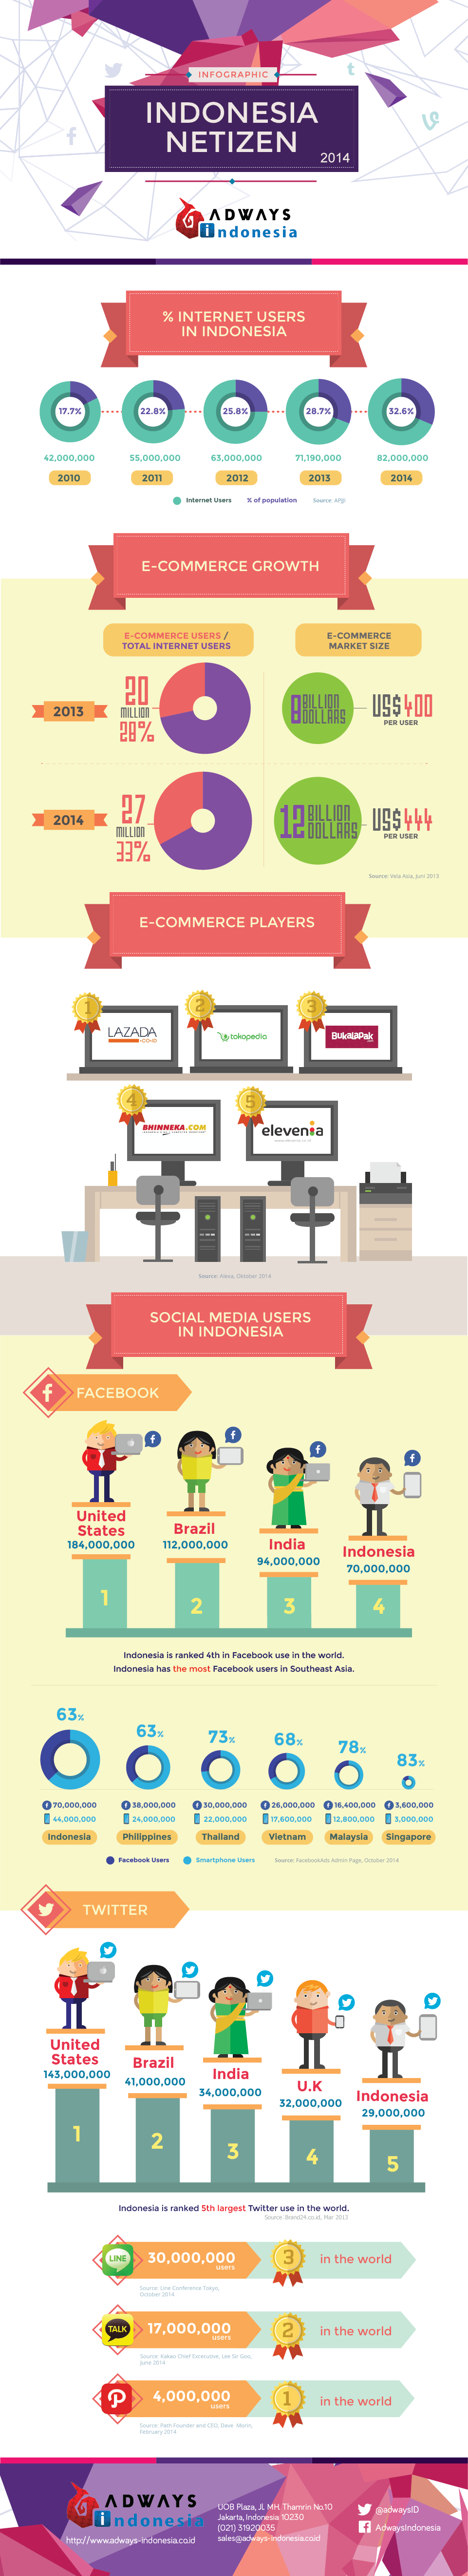 Infografis-Netizen-Indonesia-2014-by-Adways-Indonesia